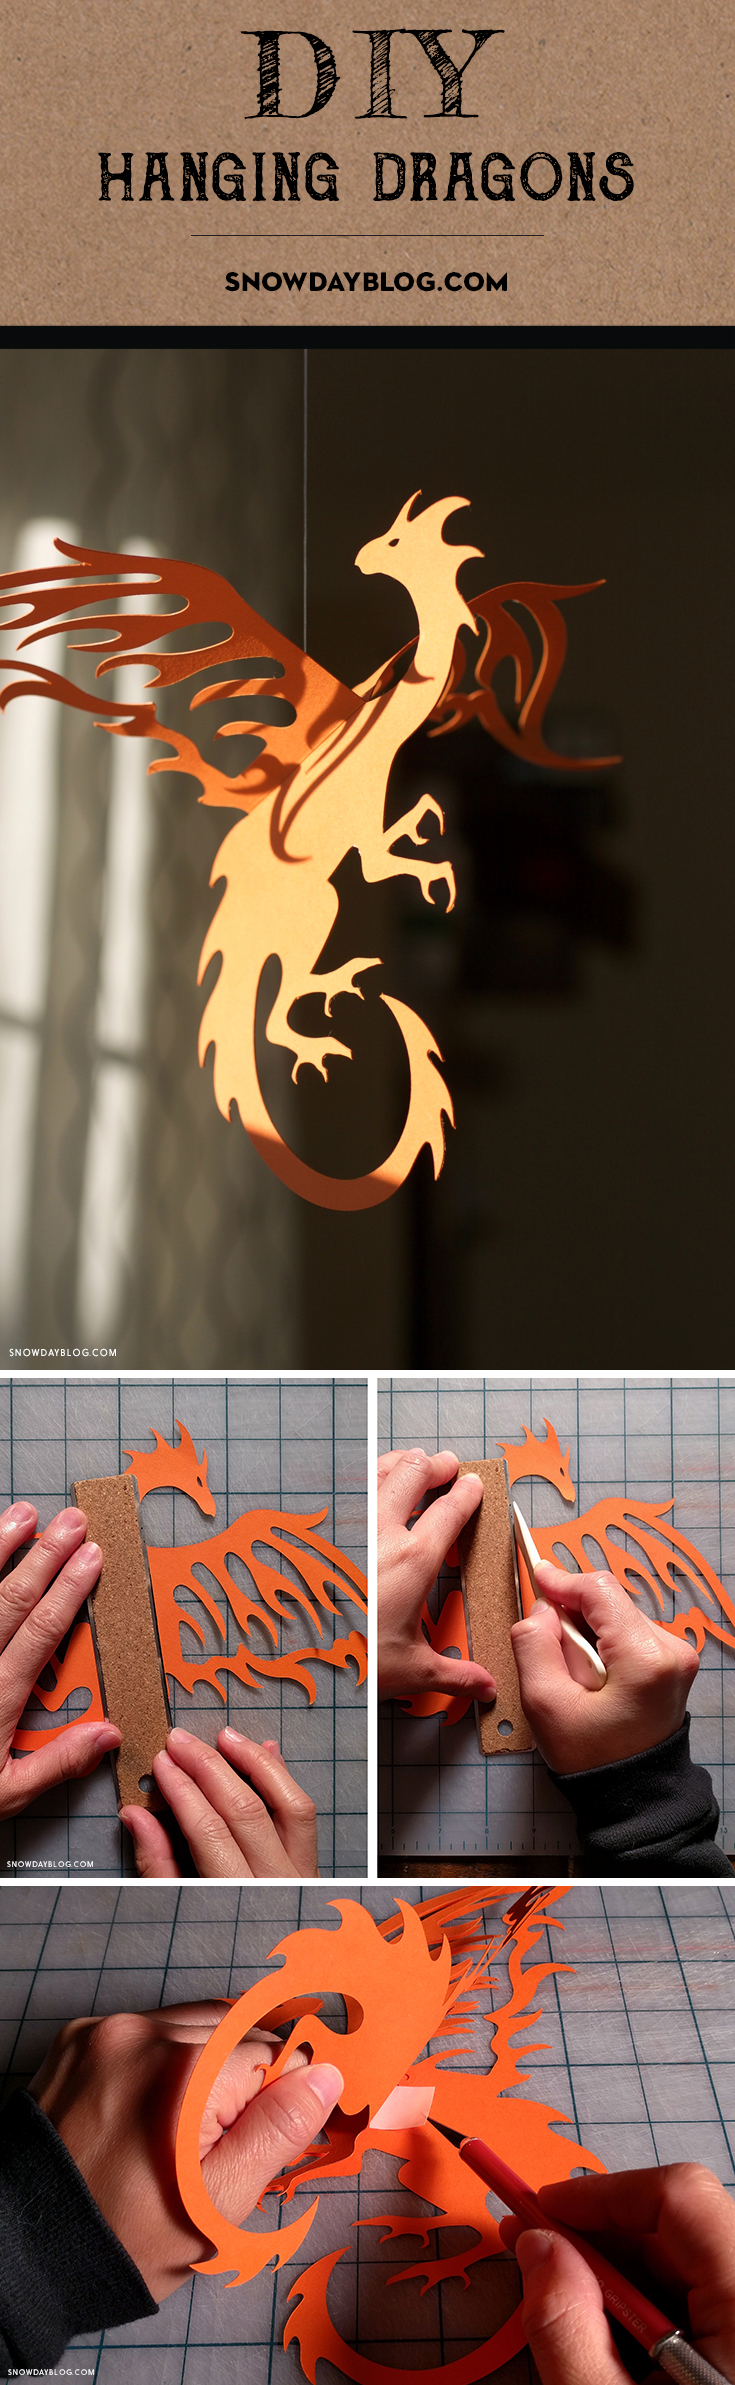 Hanging Dragons Pinterest Orange